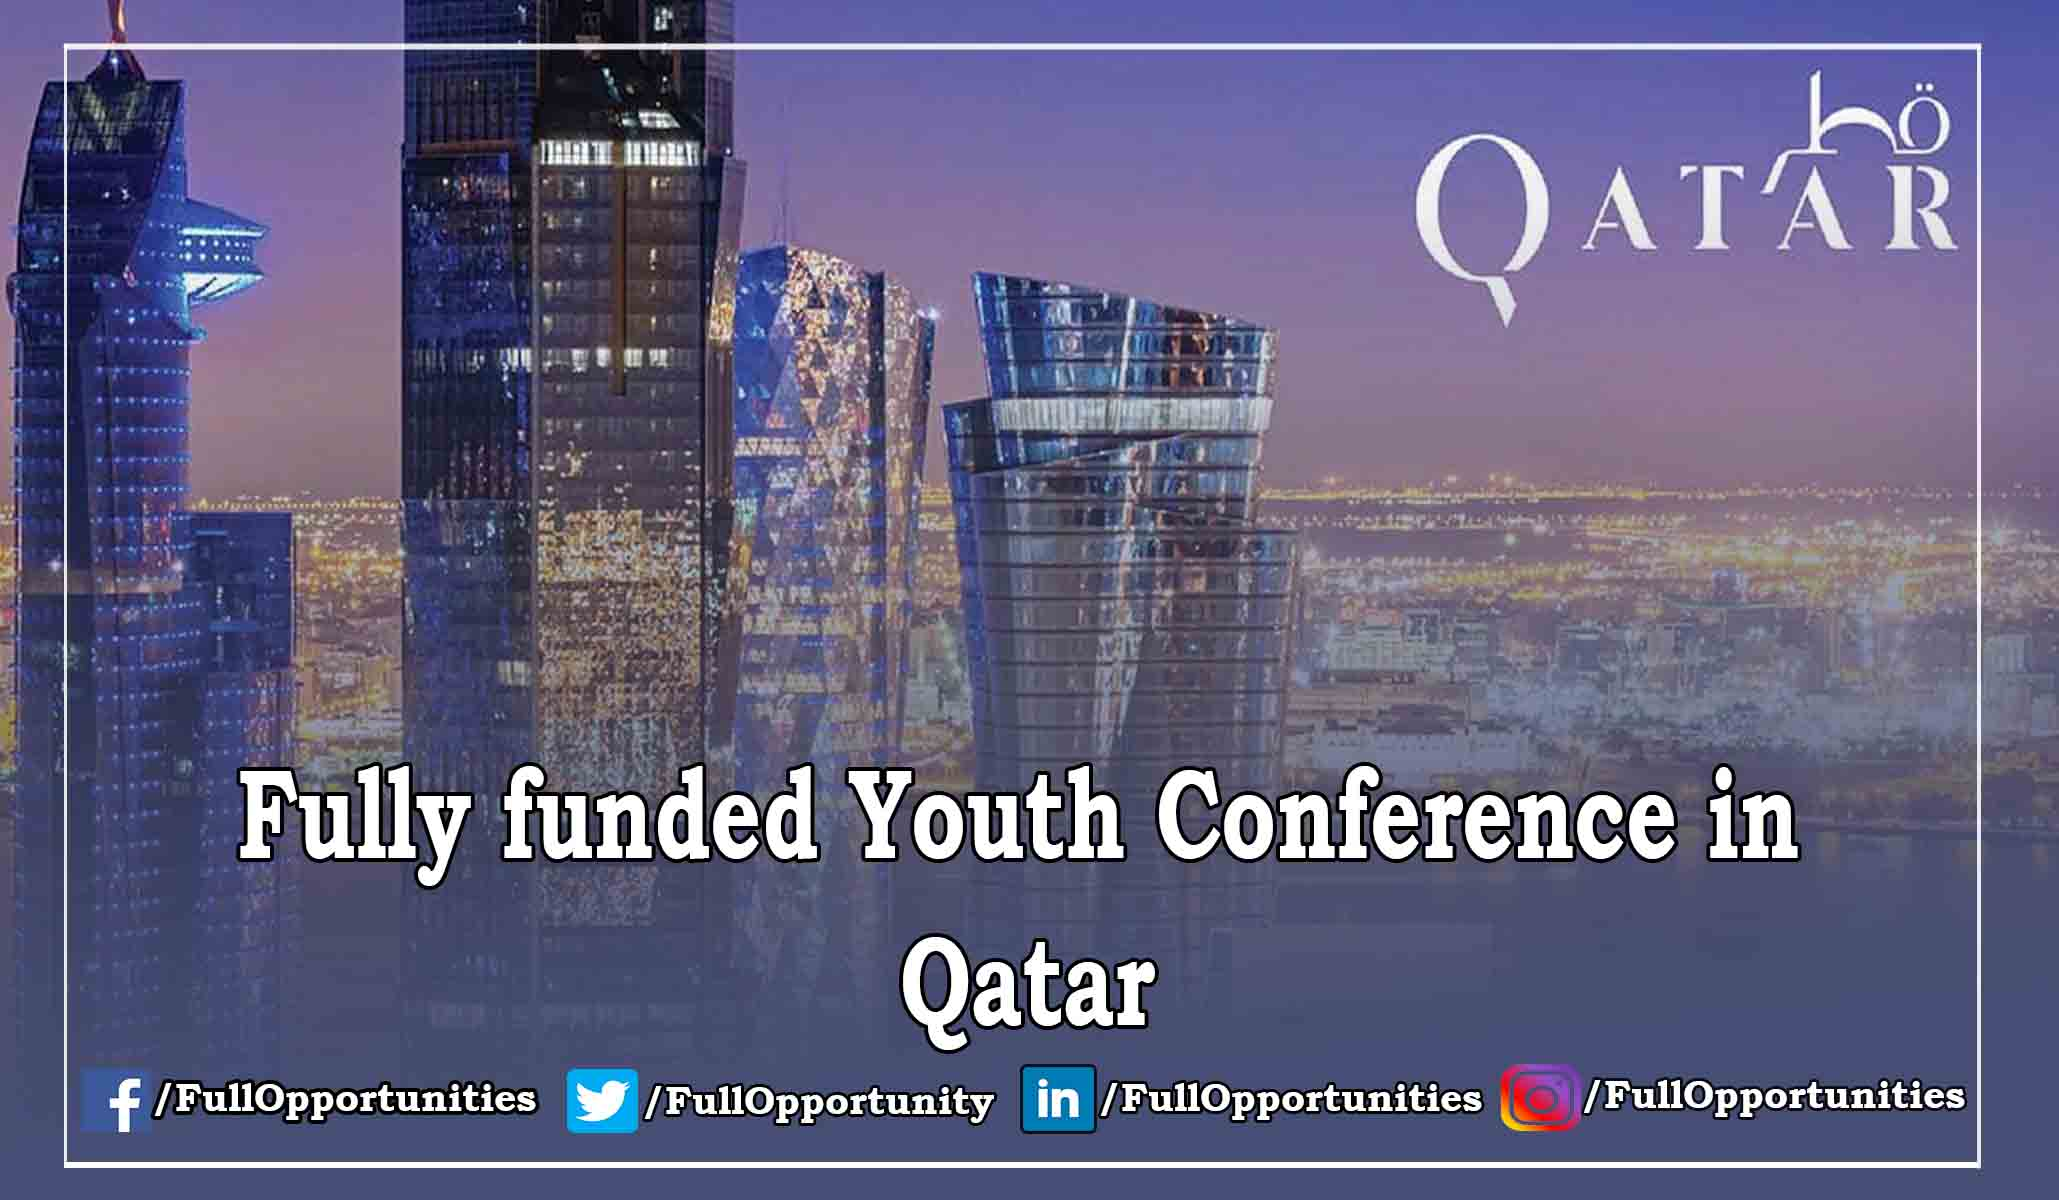 Youth Conference in Qatar 2019 - Fully Funded Conference